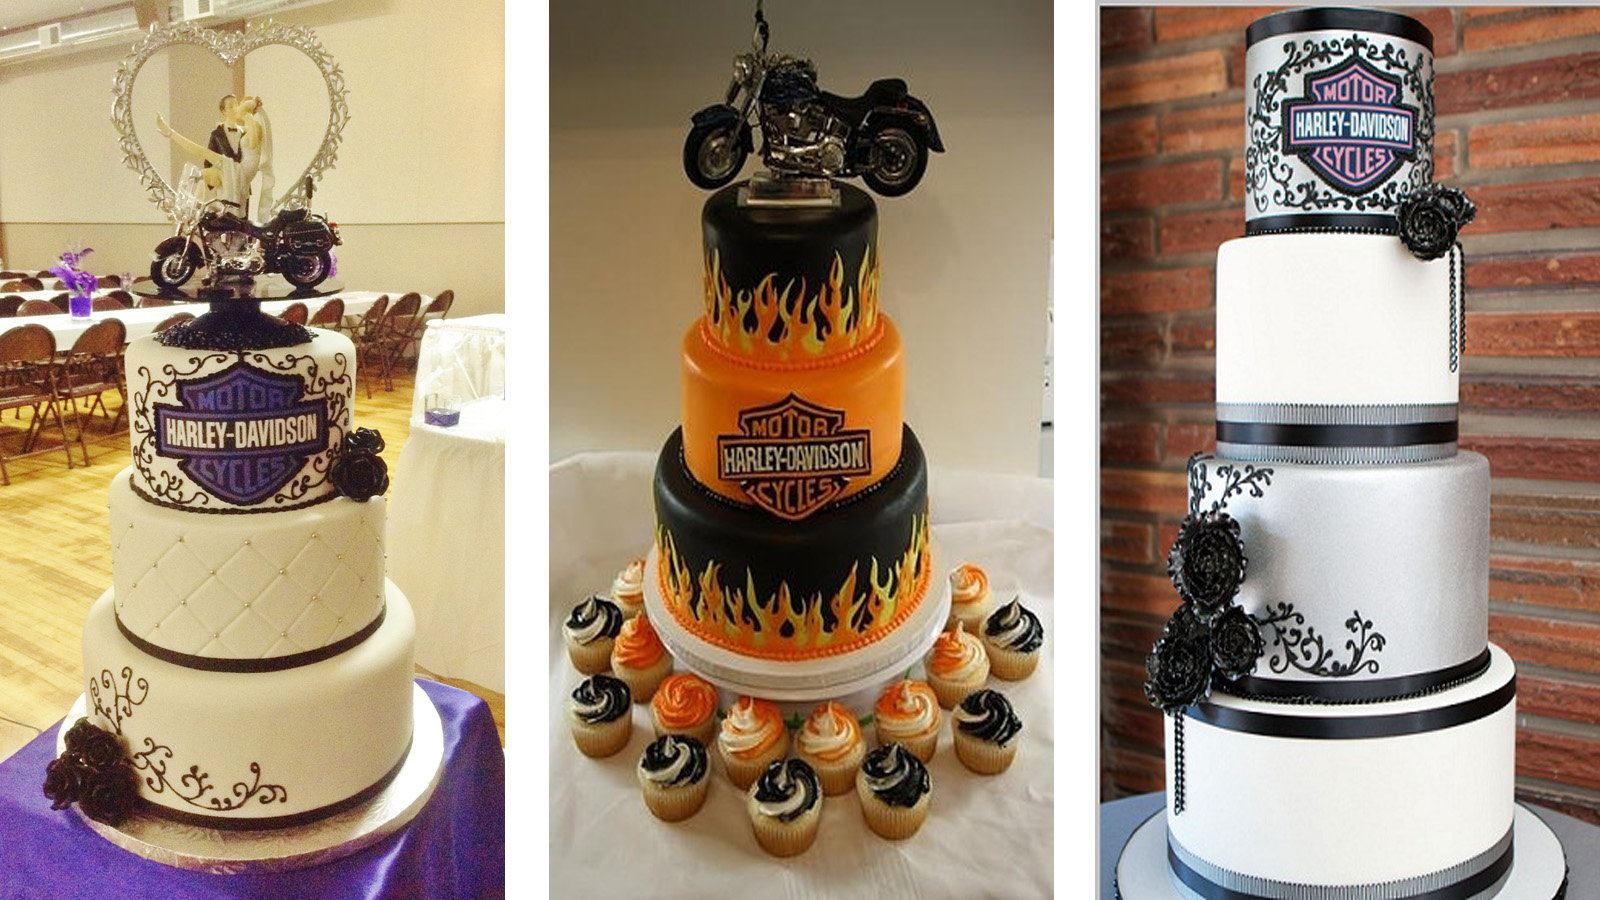 11 things you need for a harley davidson themed wedding harley davidson wedding bands Whether it has orange and black colors or traditional white the cake can still look delicious enough with the Harley Davidson logo